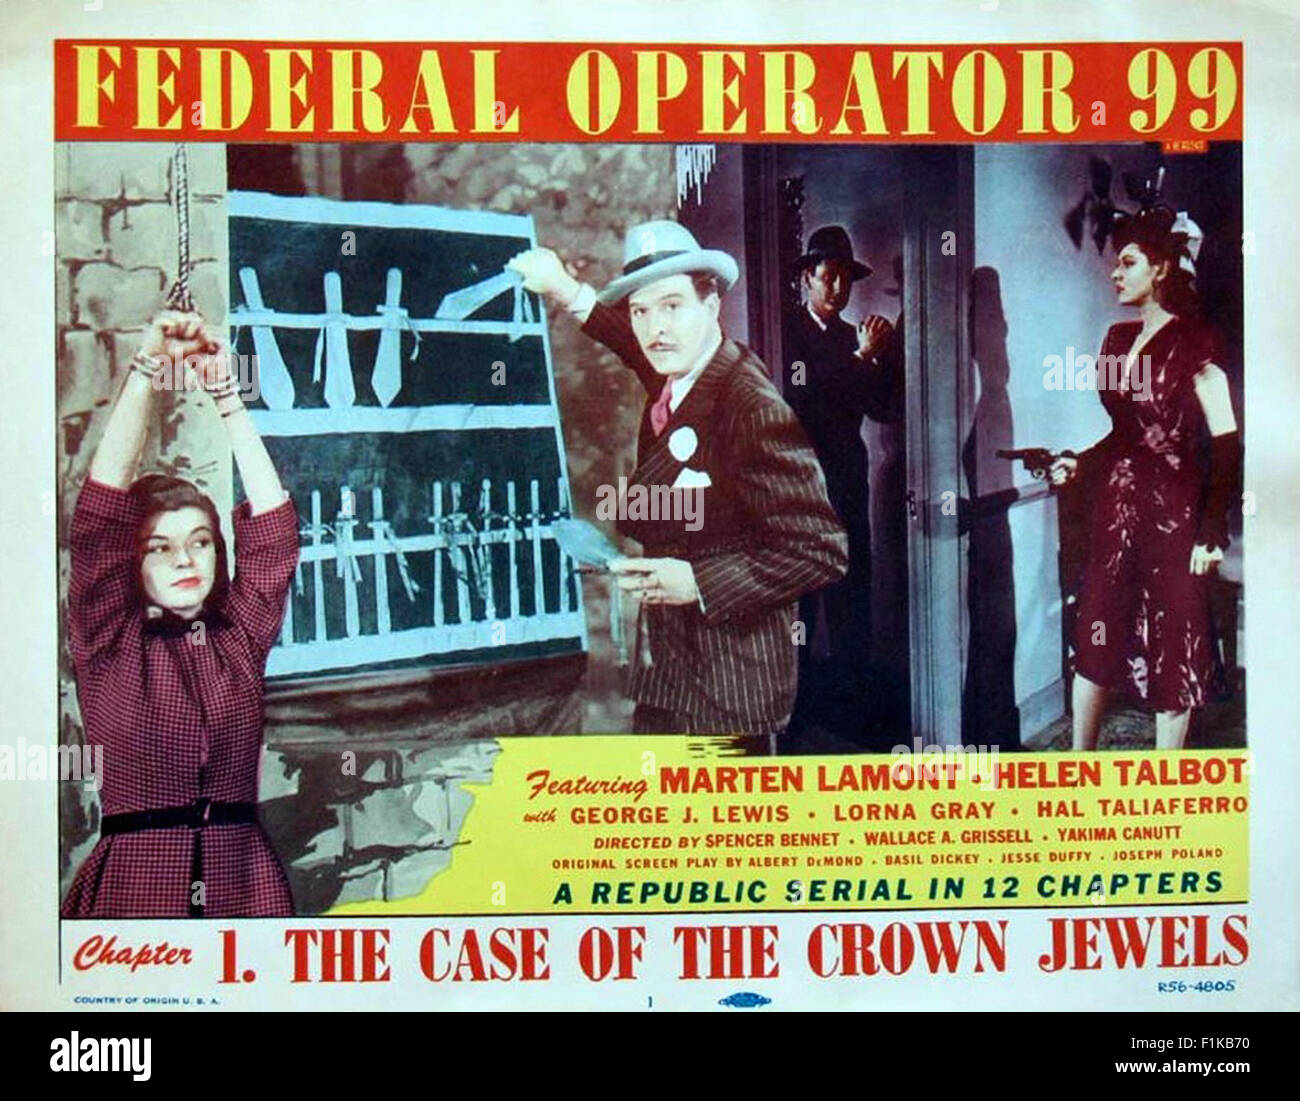 Federal Operator 99 001 - Movie Poster - Stock Image